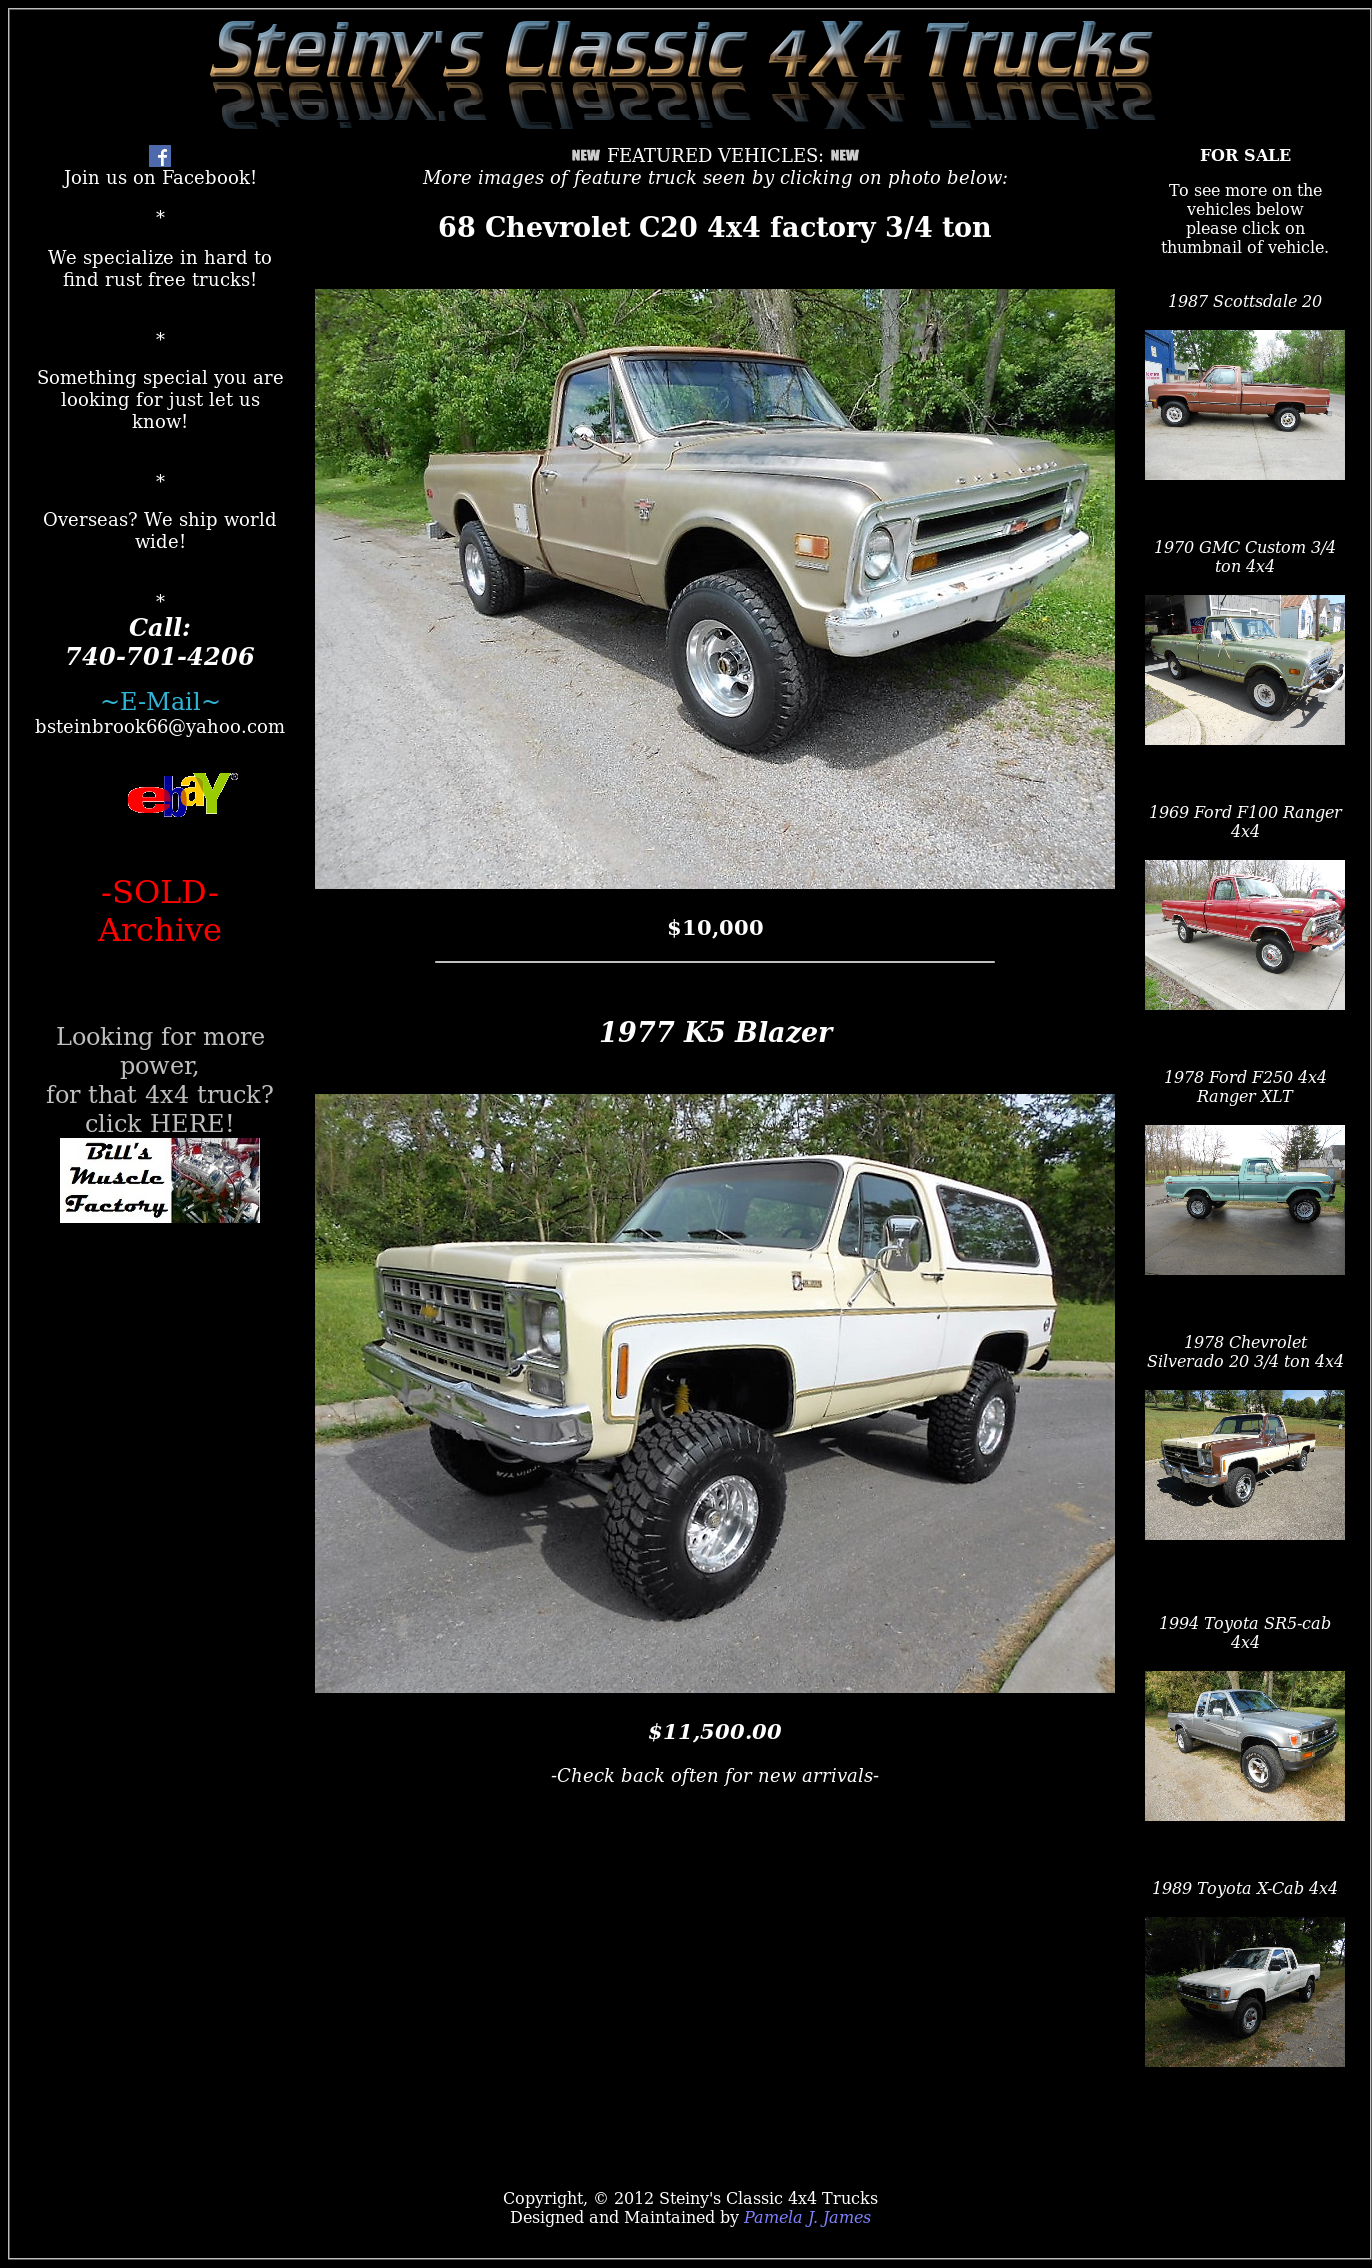 Steinys Classic 4x4 Trucks Competitors Revenue And Employees 1969 Ford Ranger Xlt Owler Company Profile